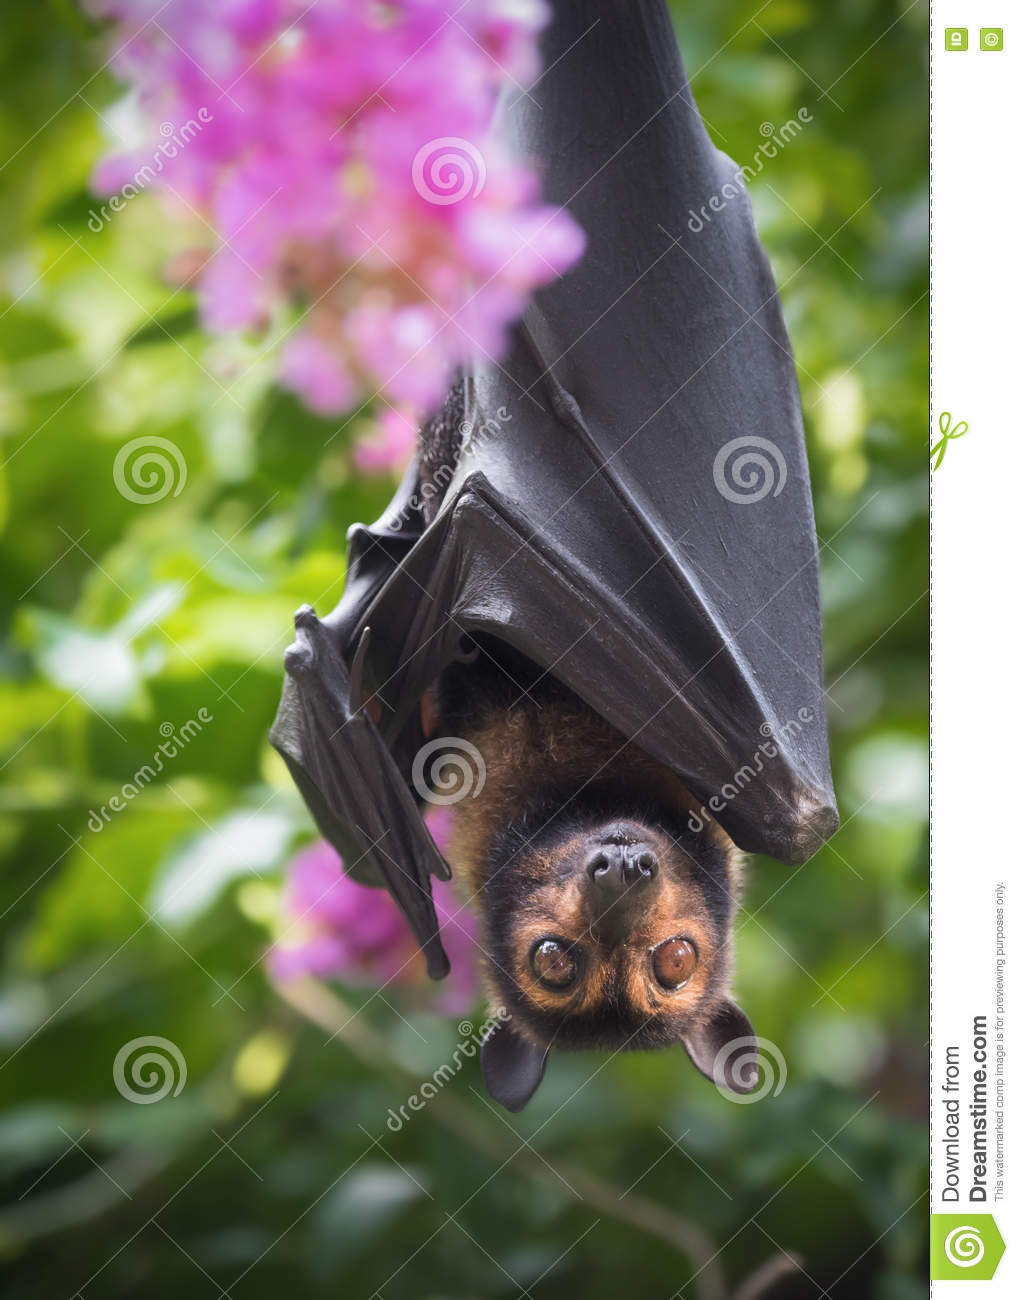 Spectacled Flying Fox Bat with Crepe Myrtle